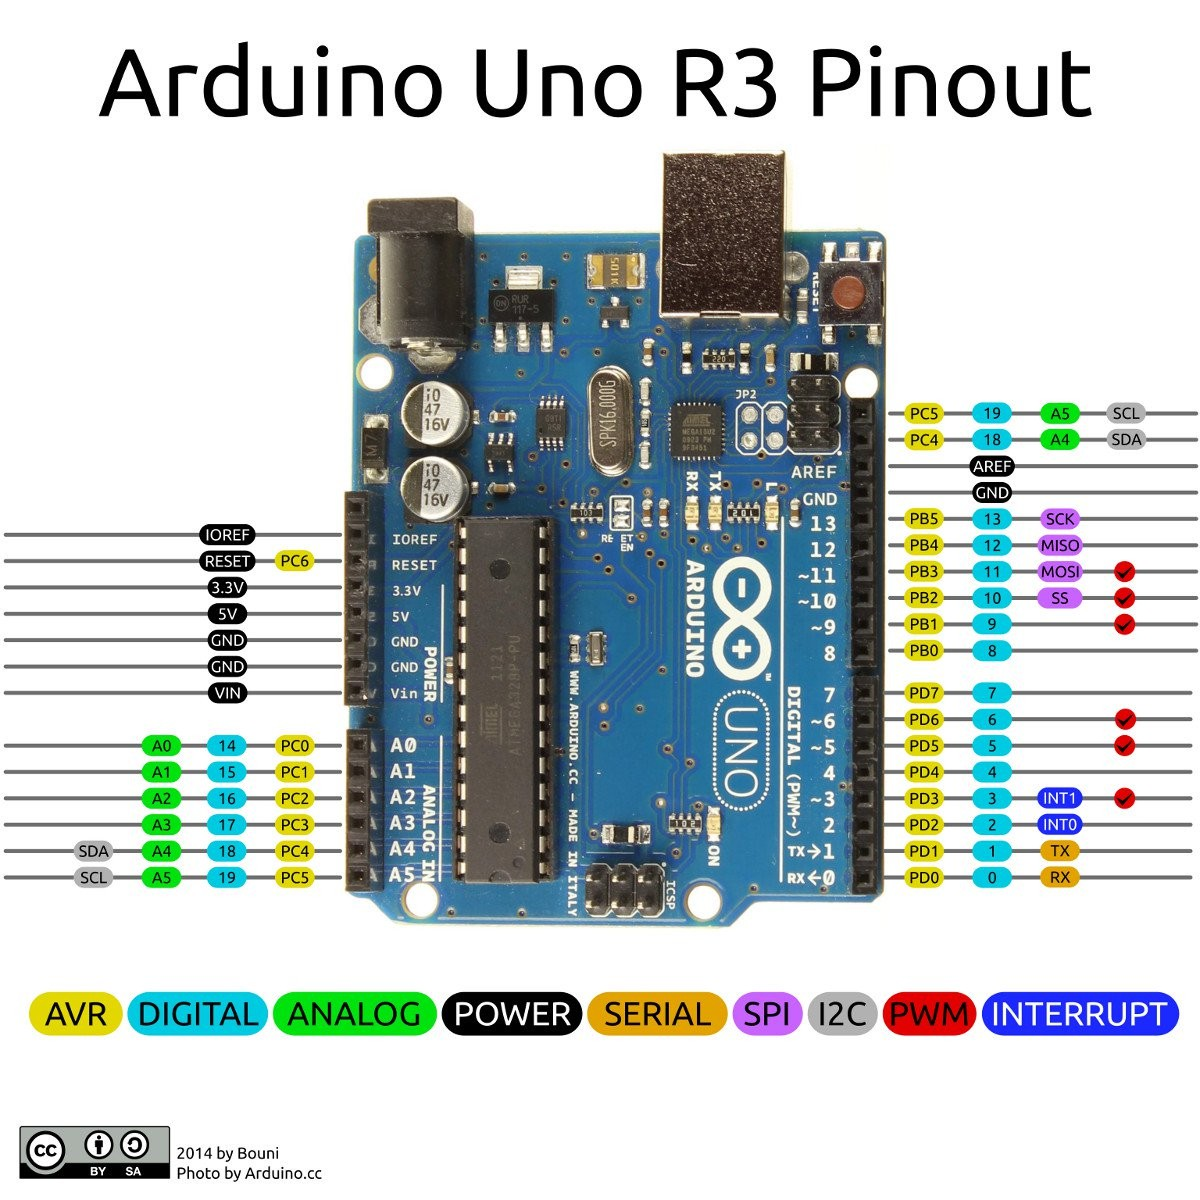 arduino uno wiring diagram best of wiring diagram image rh mainetreasurechest com connect arduino uno to android via bluetooth connect arduino uno to pc via bluetooth